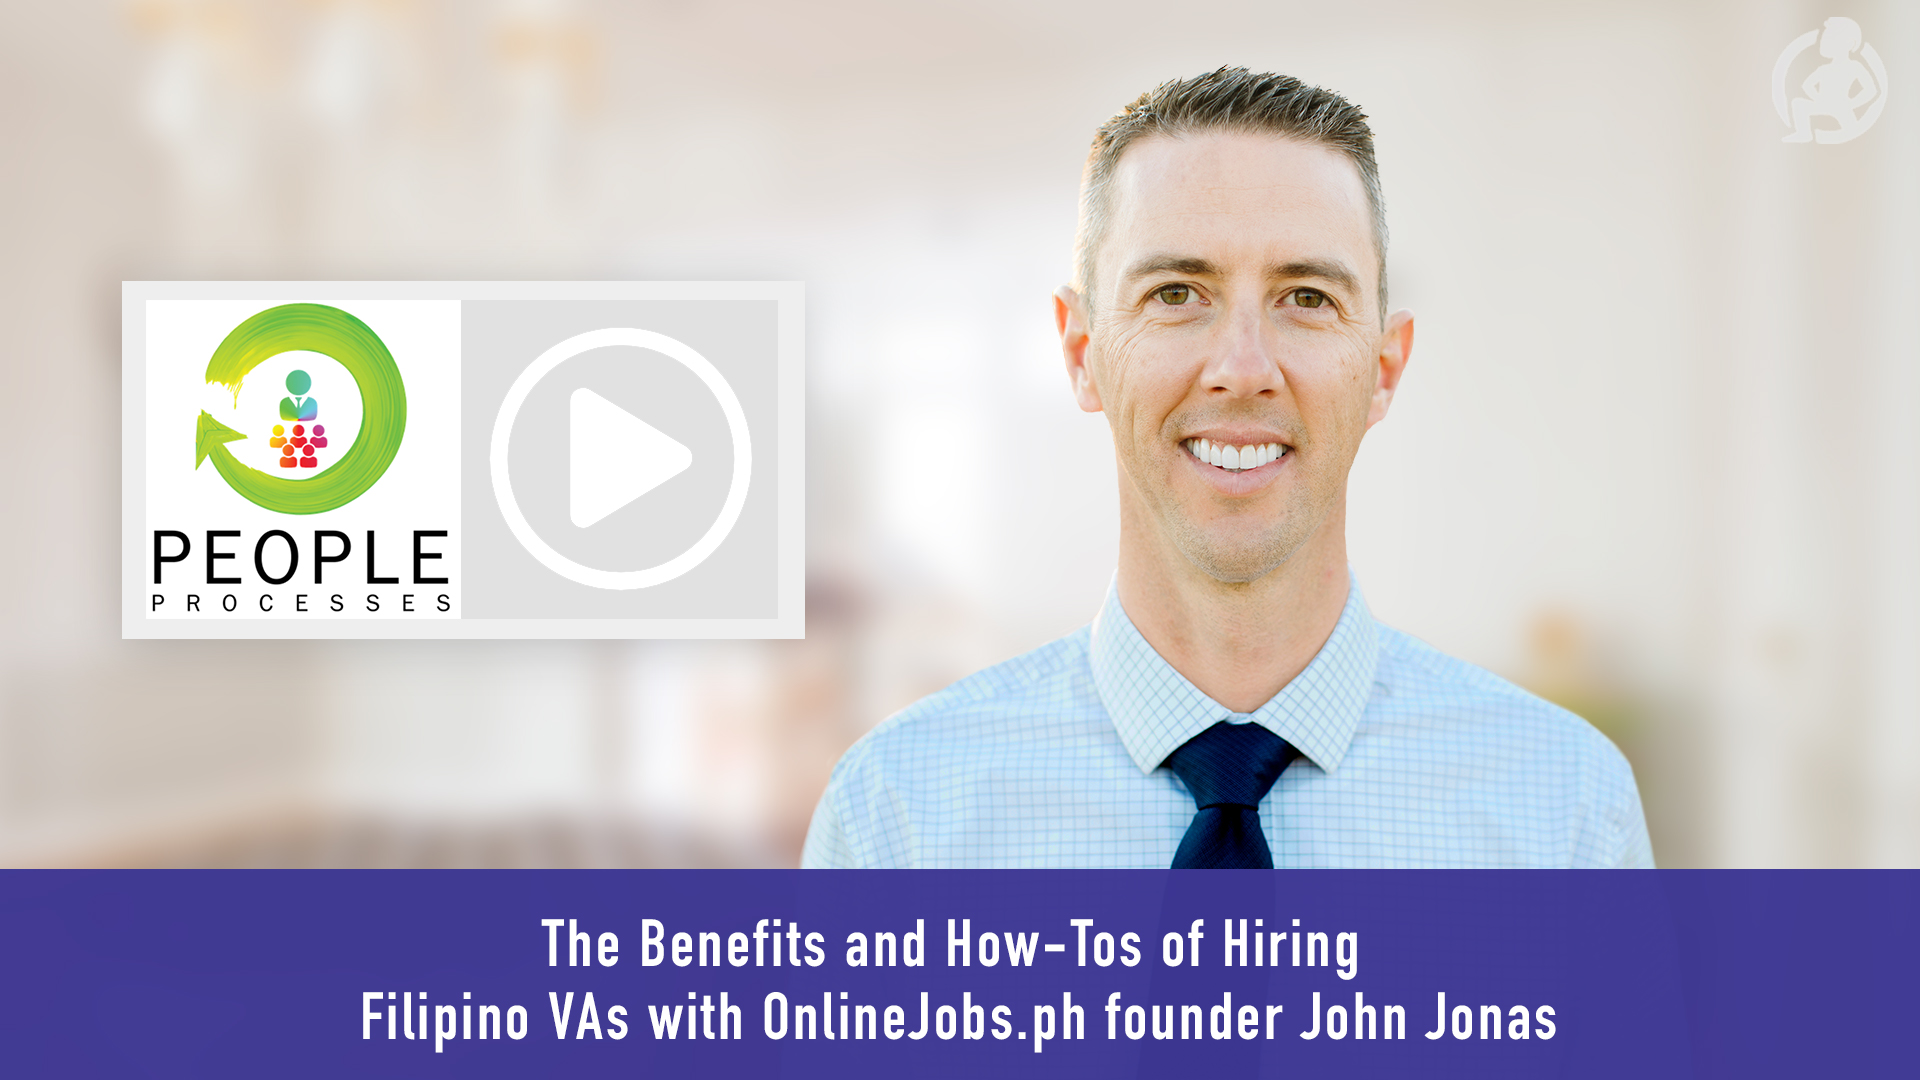 The Benefits and How-Tos of Hiring Filipino VAs with OnlineJobs.ph founder John Jonas